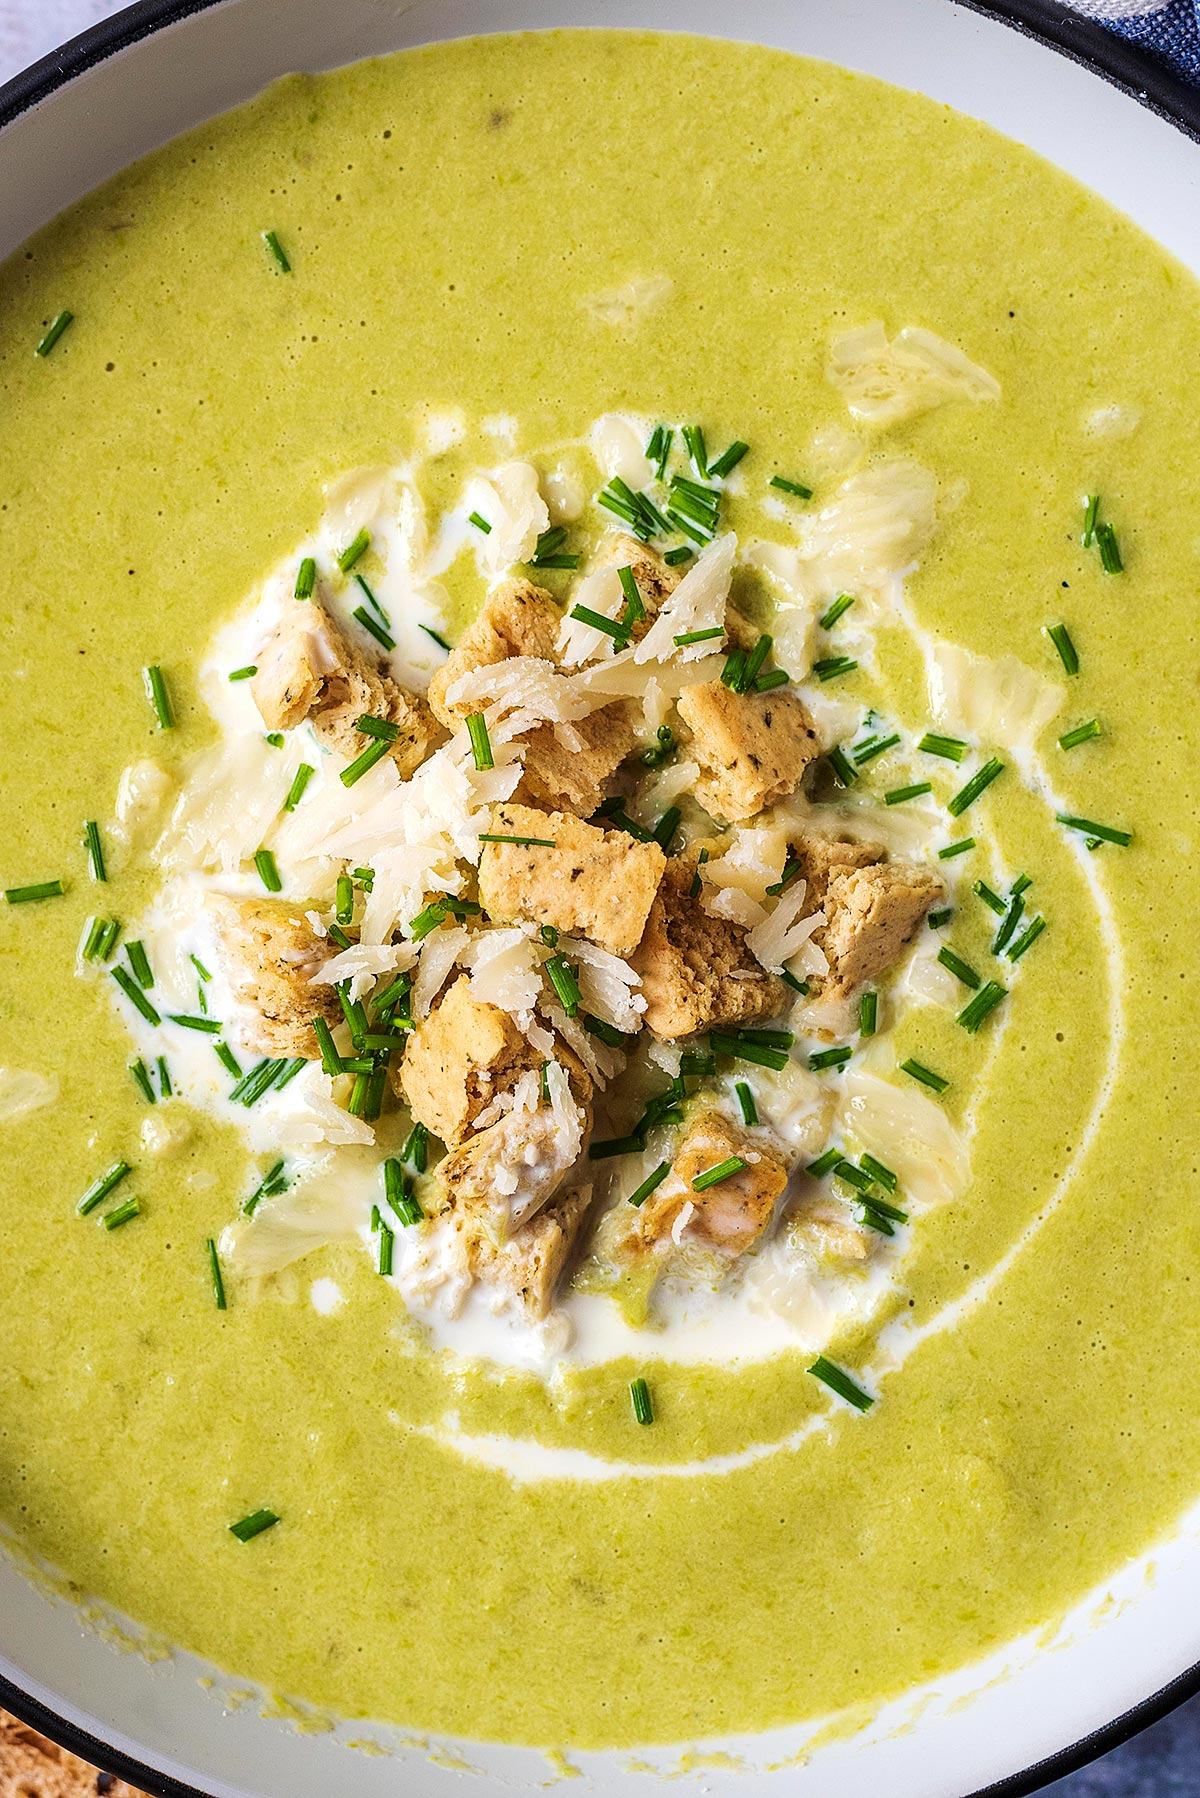 Croutons, and herbs floating on top of soup